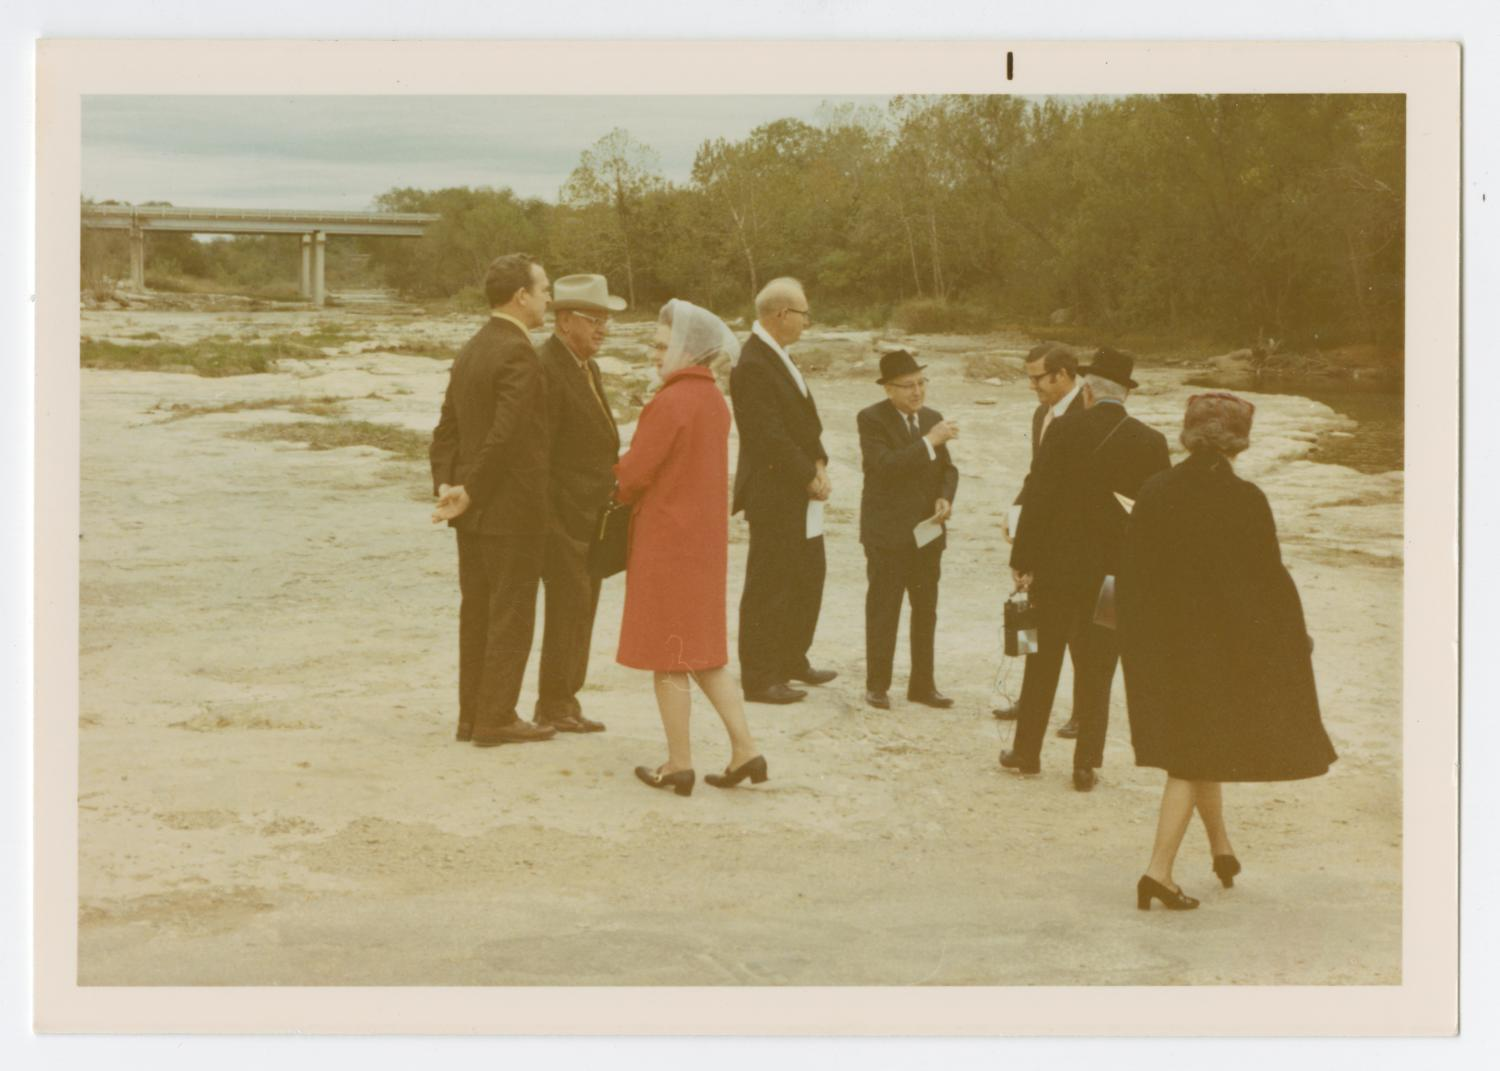 [Photo Taken During Dedication of the Round Rock Marker], Photograph taken facing east of several individuals standing during a historic marker dedication ceremony for Round Rock in Brushy Creek. A highway bridge can be seen in the back ground, and a creek can be seen against a tree line to the far right. A woman stands near the center of the group, seen wearing a bright red coat, and another woman in a black coat can be seen from behind, walking to the right.,